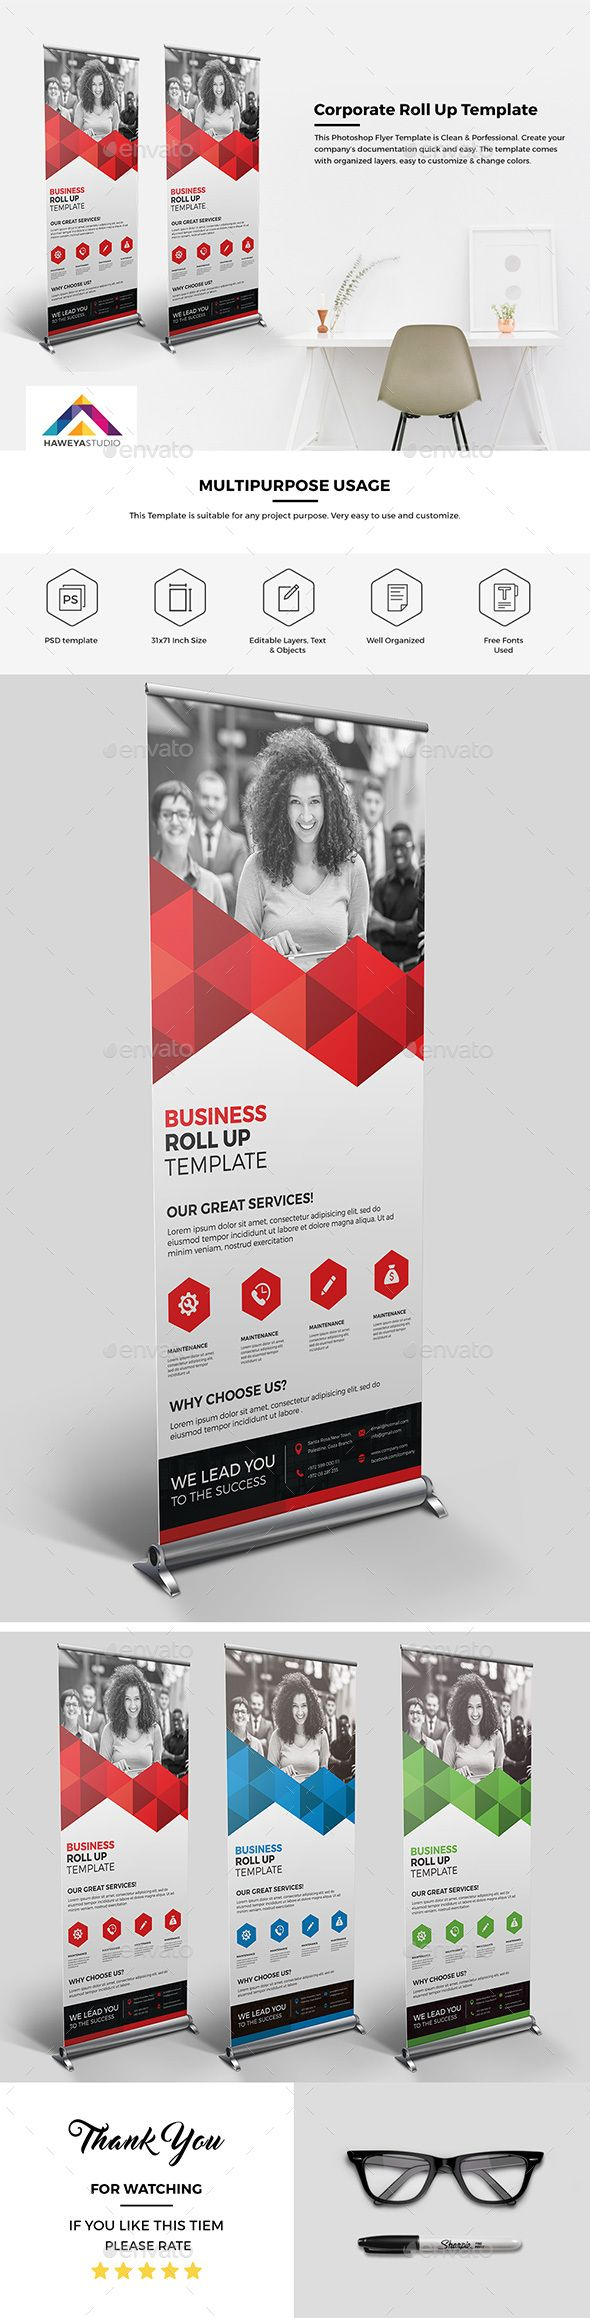 222 best Roll up Banner images on Pinterest | Banner template ...